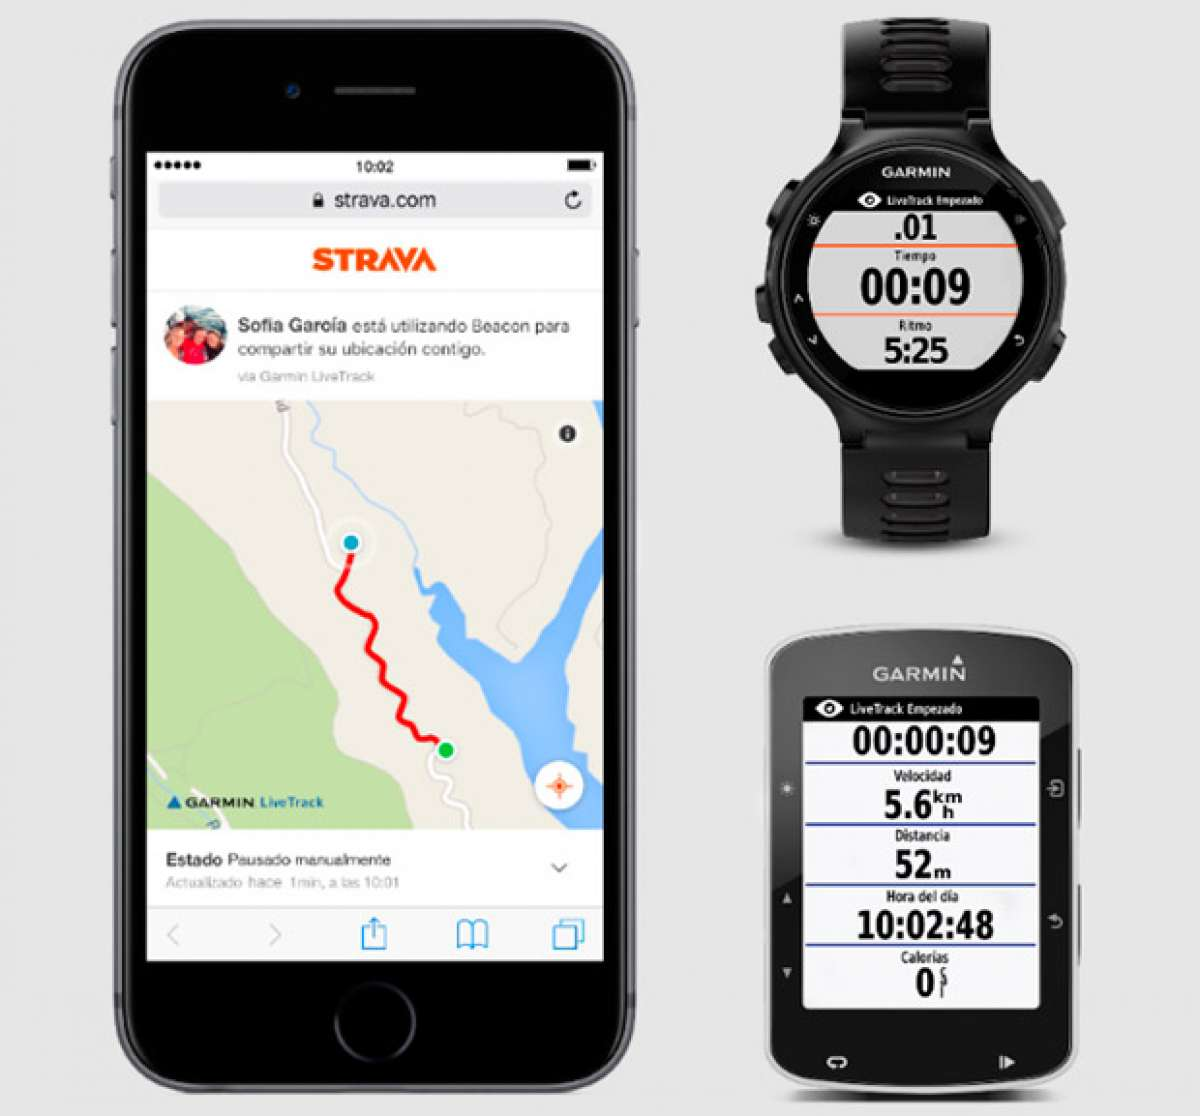 La función de seguridad Strava Beacon, ya disponible en los dispositivos de Garmin